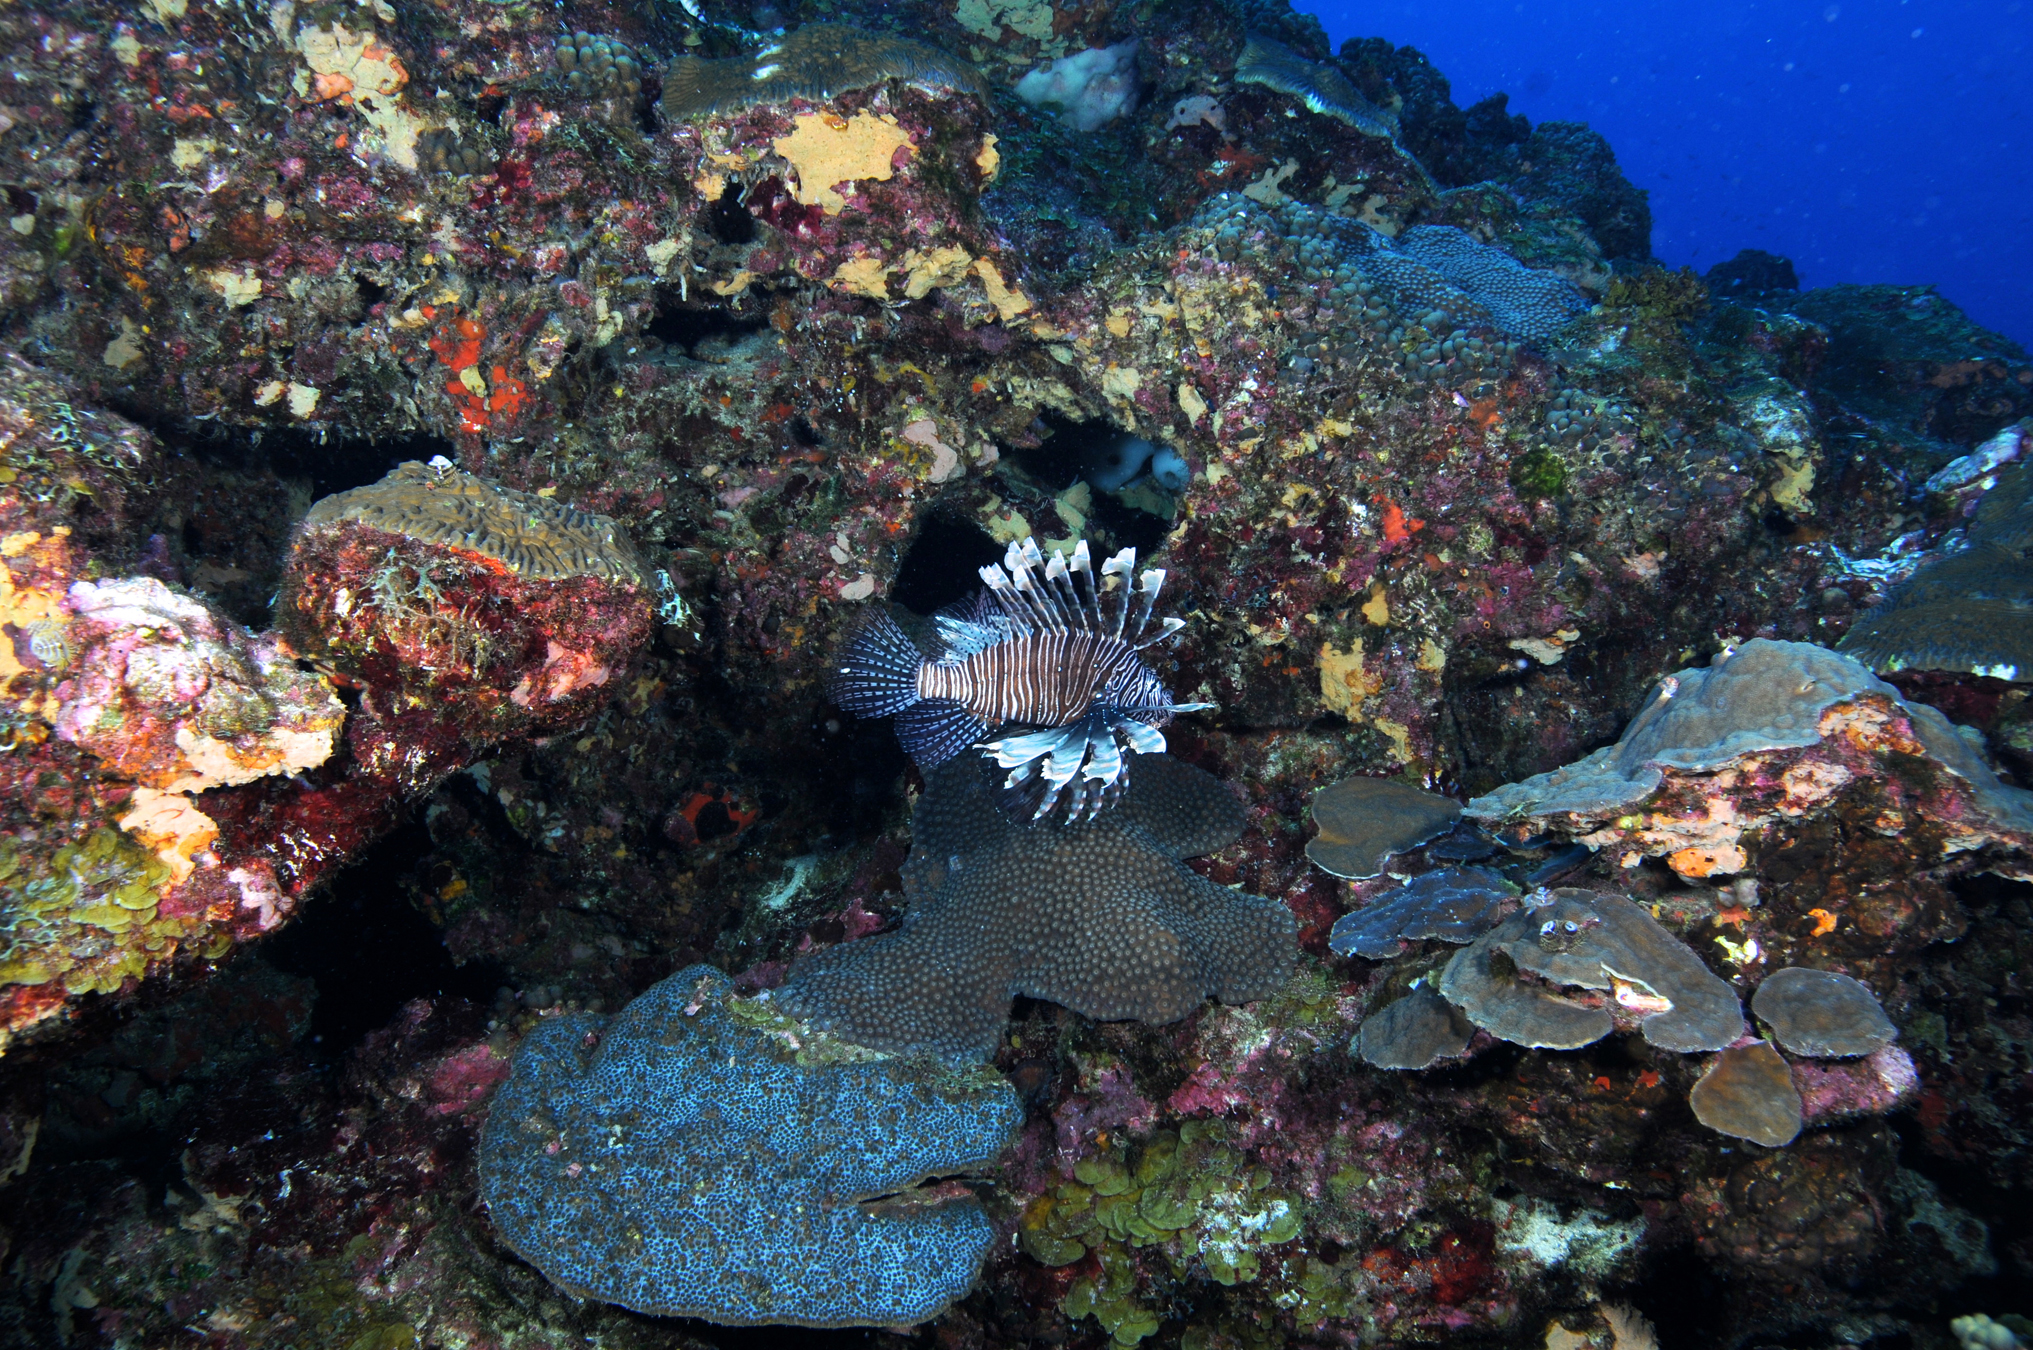 lionfish actually blend into their reef surroundings quite well